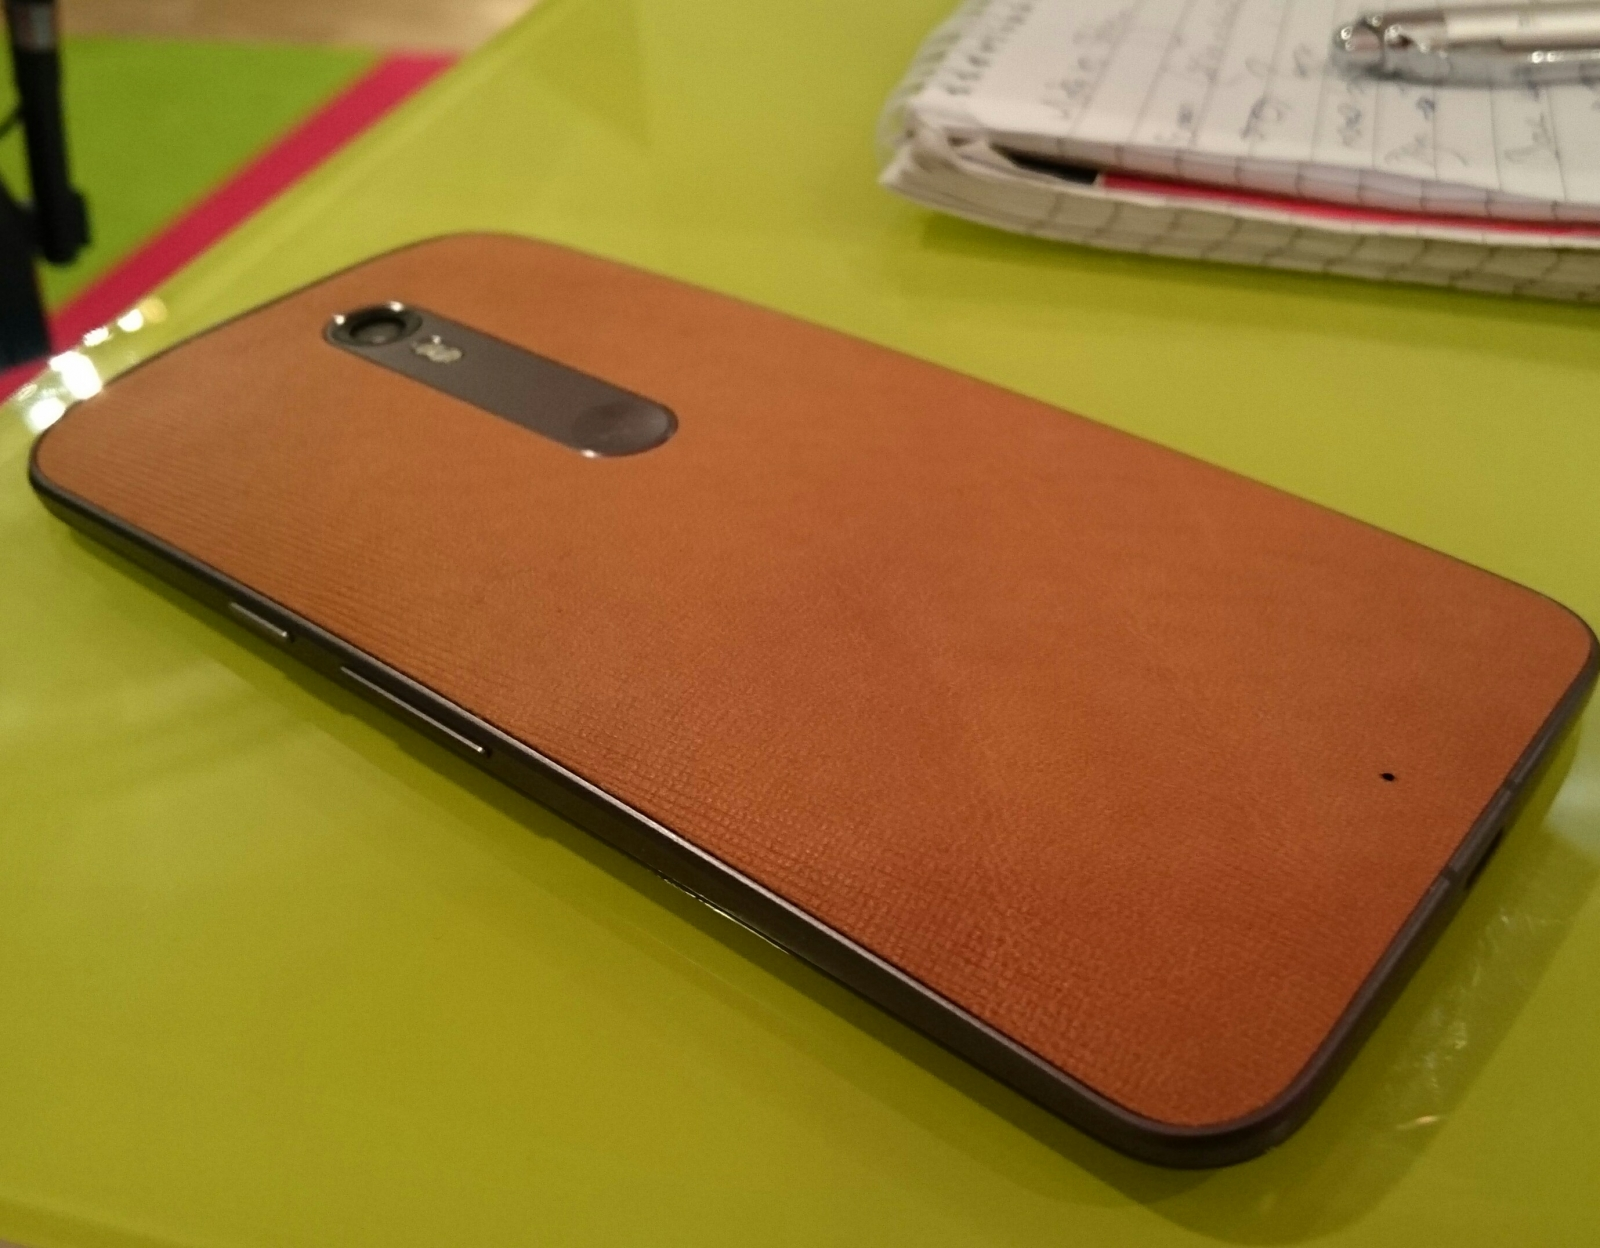 Moto X Style hands-on preview